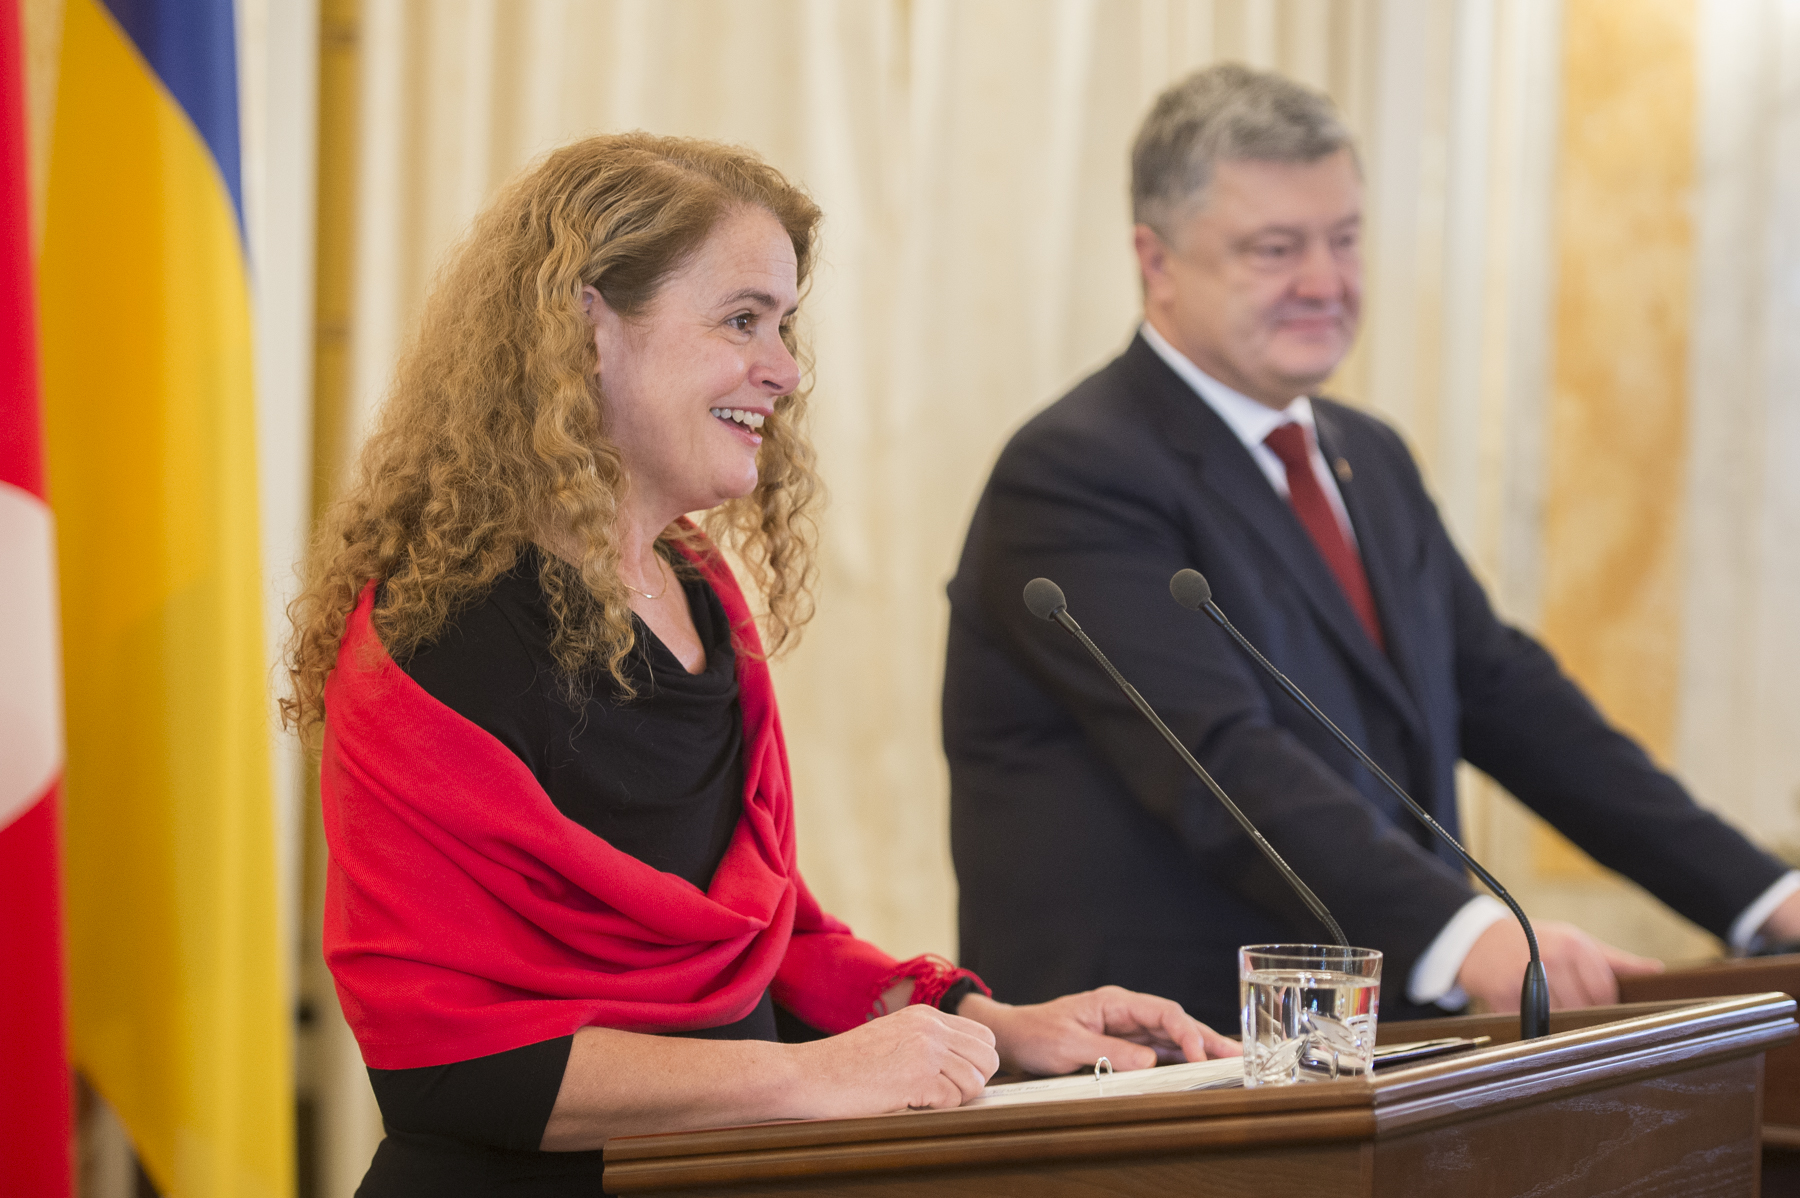 After the meeting, both the Governor General and President Poroshenko delivered statements to the media. Her Excellency's declaration provided an opportunity to reaffirm Canada's support for Ukraine.